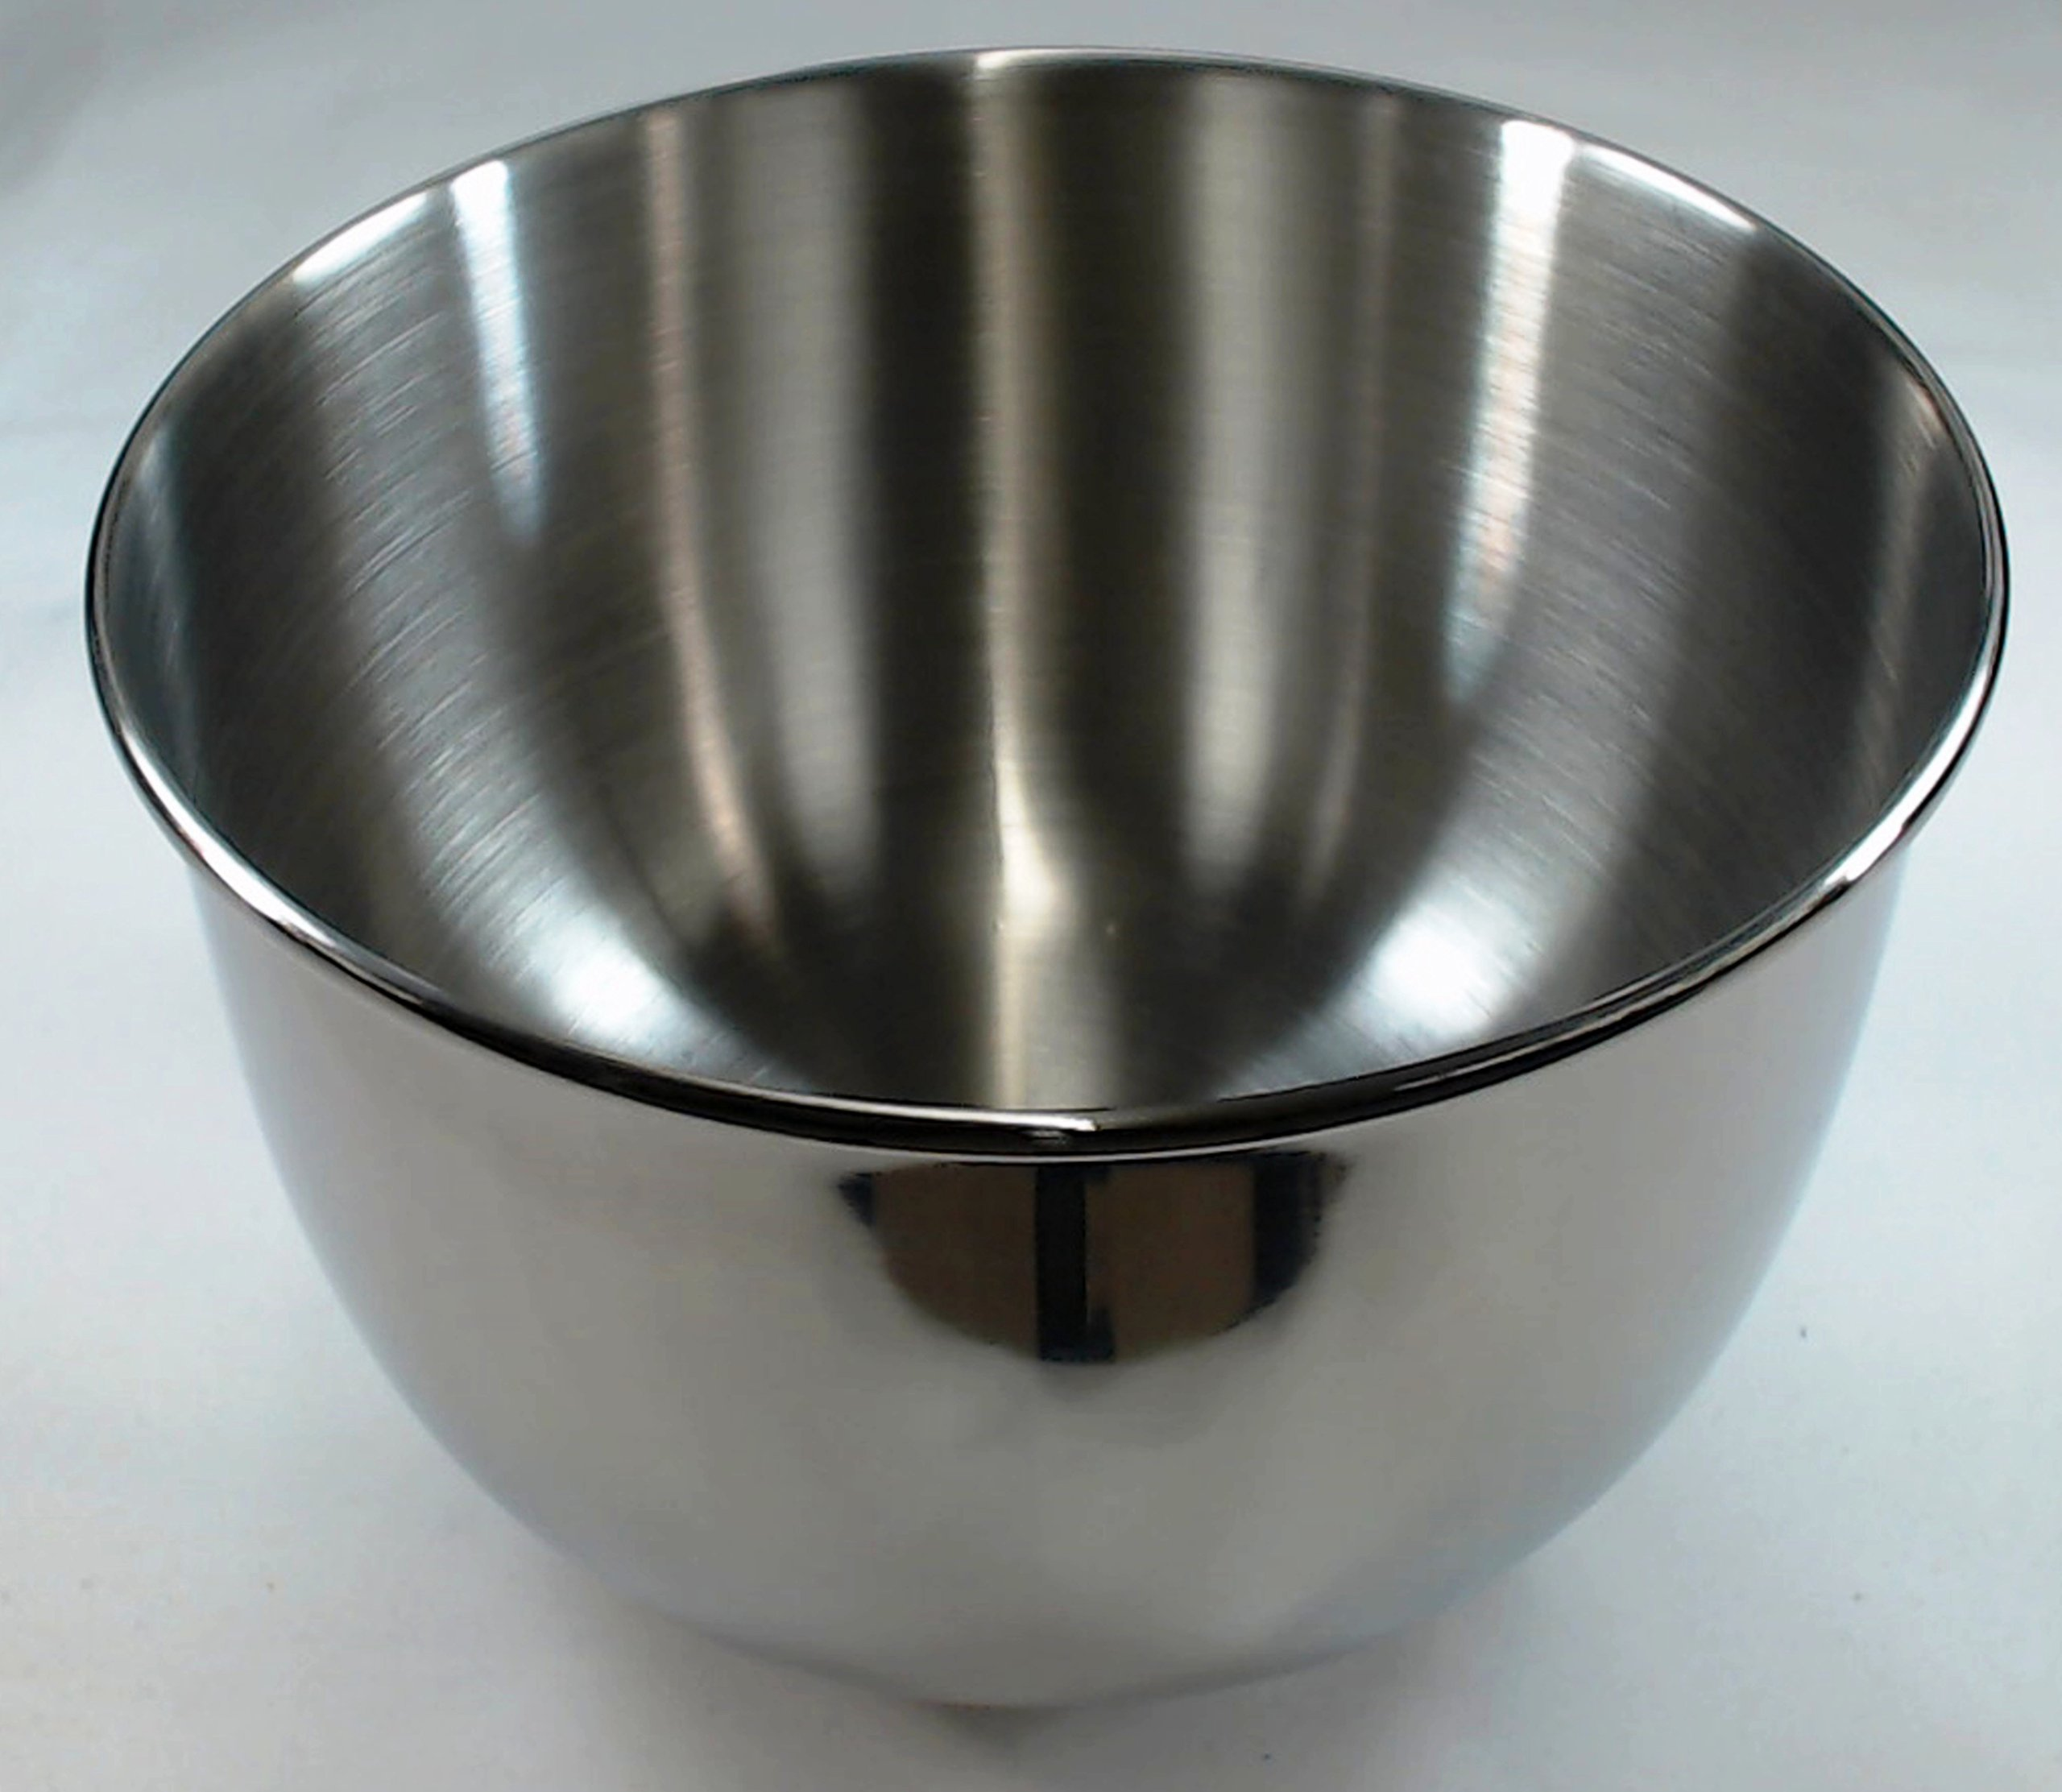 Sunbeam / Oster 022803-000-000 Stainless Steel Bowl (Small) by Sunbeam